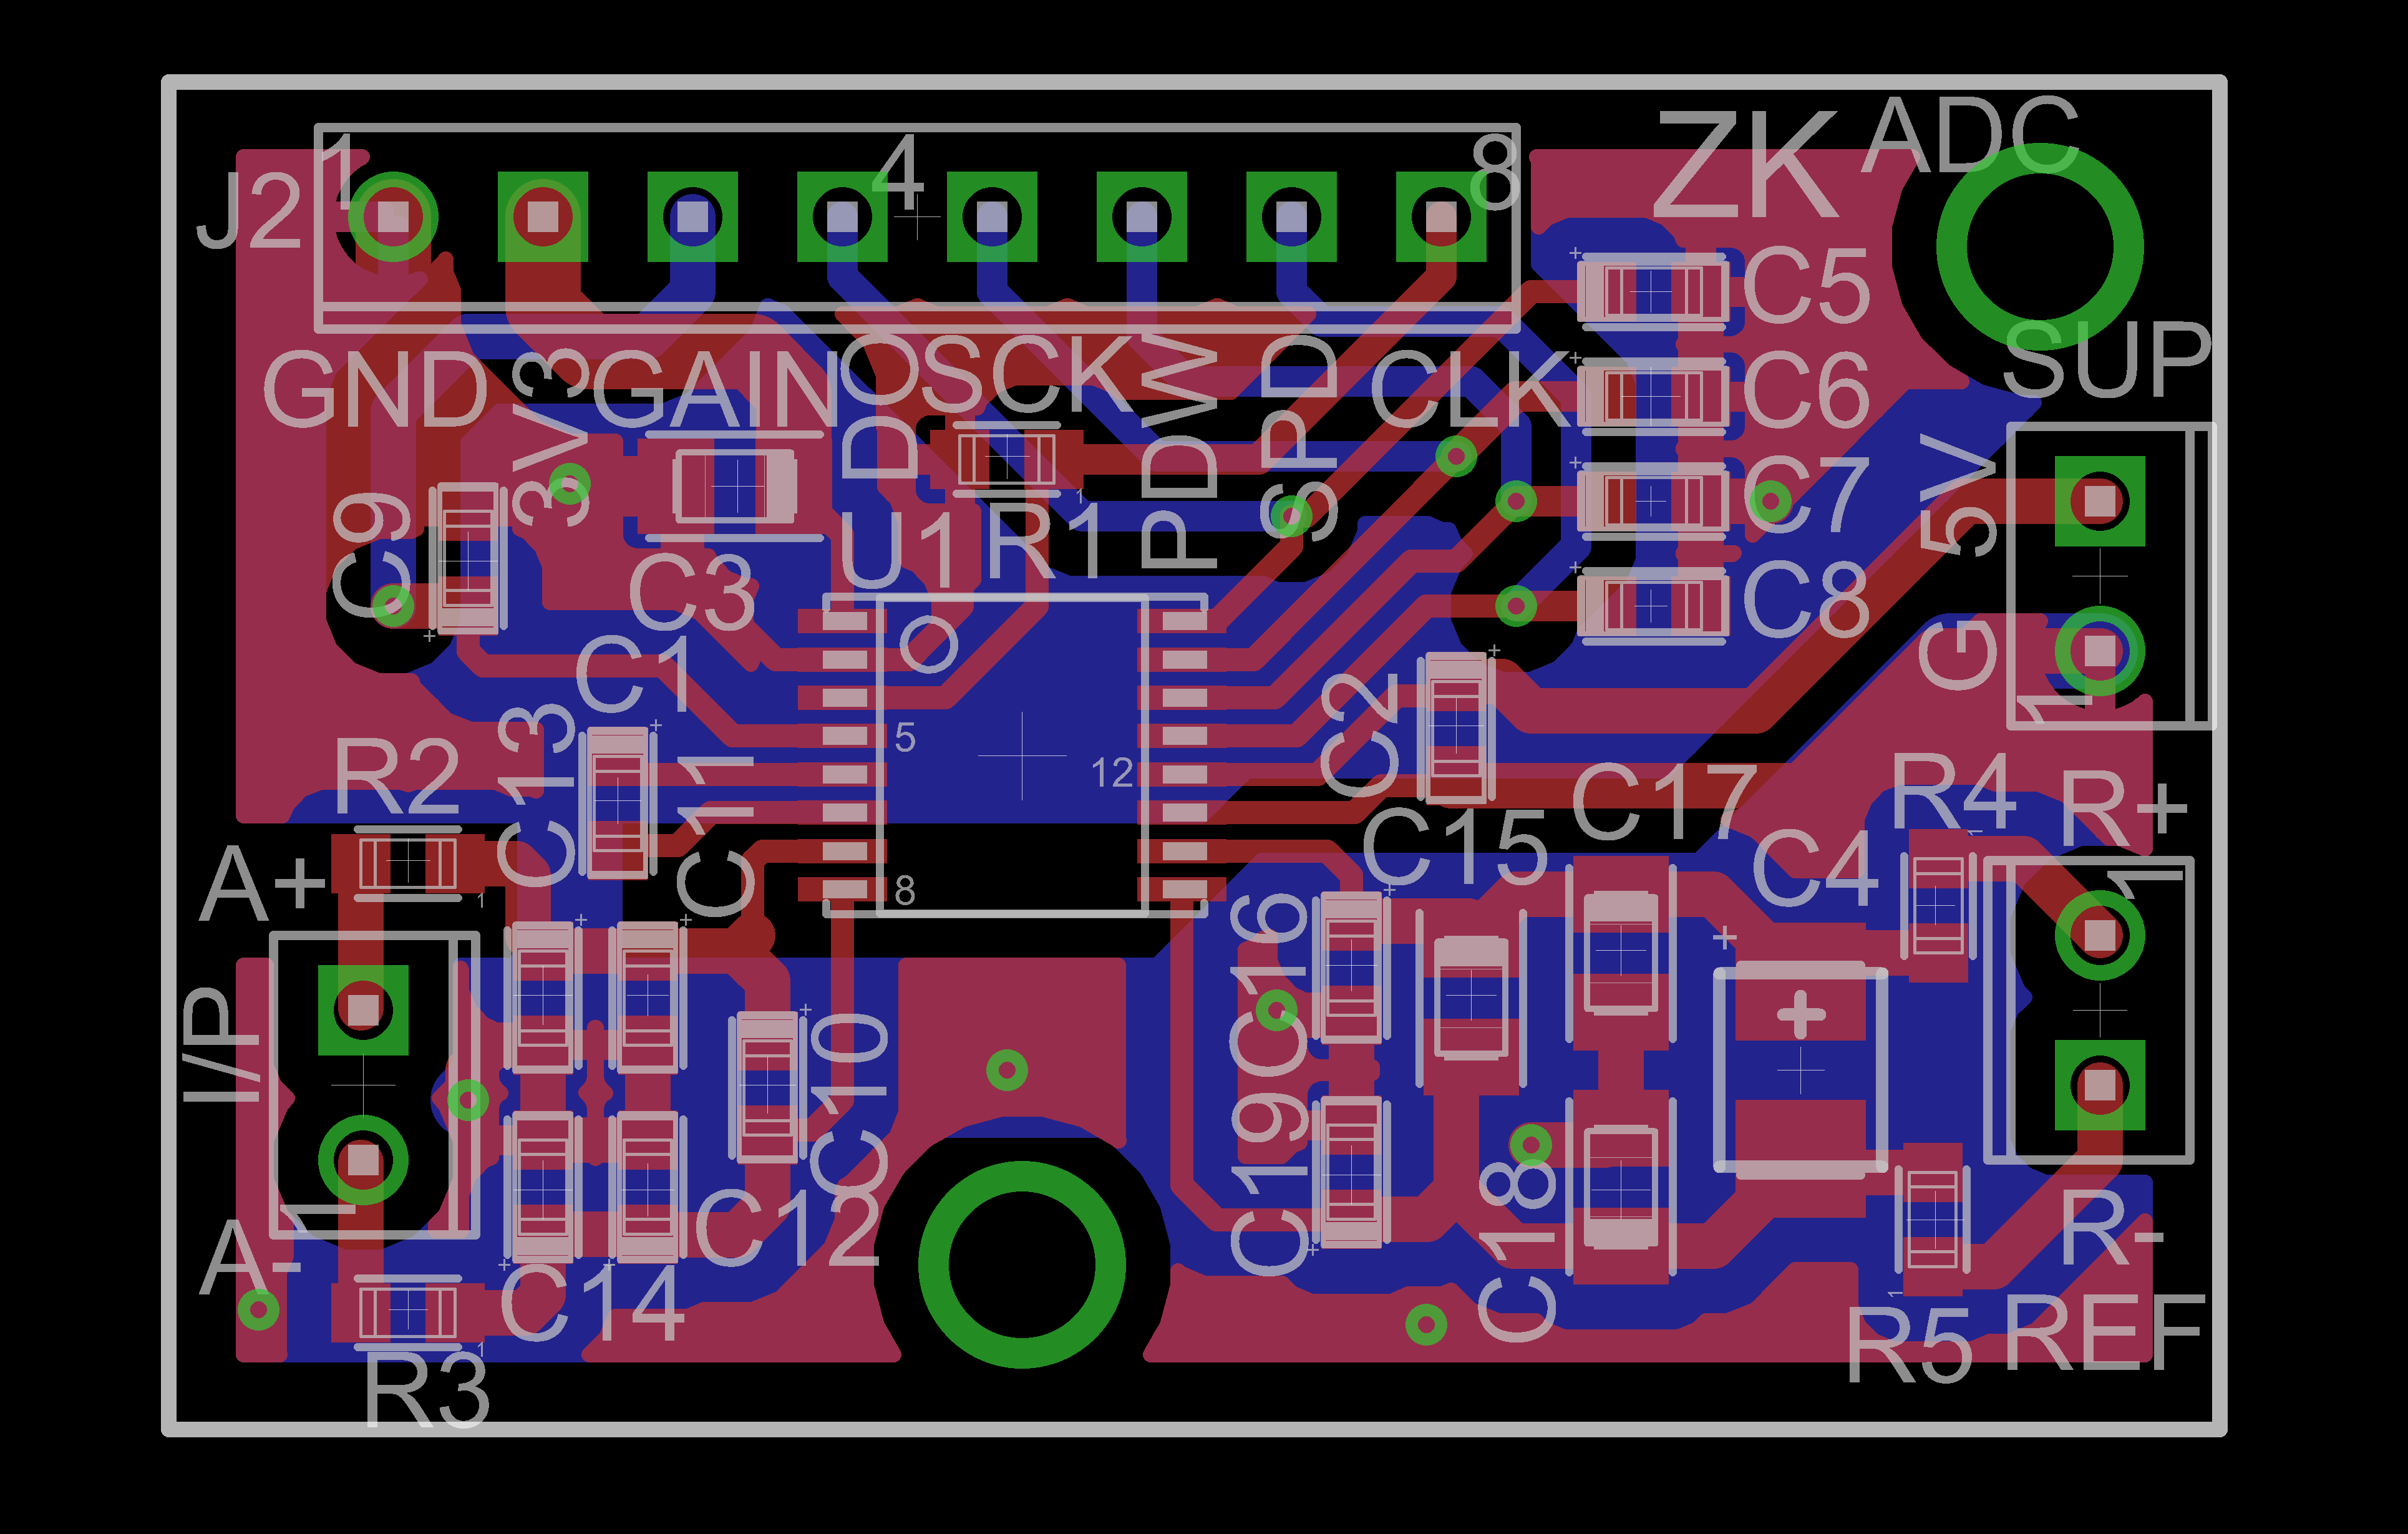 Snap Pcb Design Support And Layout From Precision Camsoftware Circuitcam V7 Verification Required For Adc Ads1230 Data Converters Forum